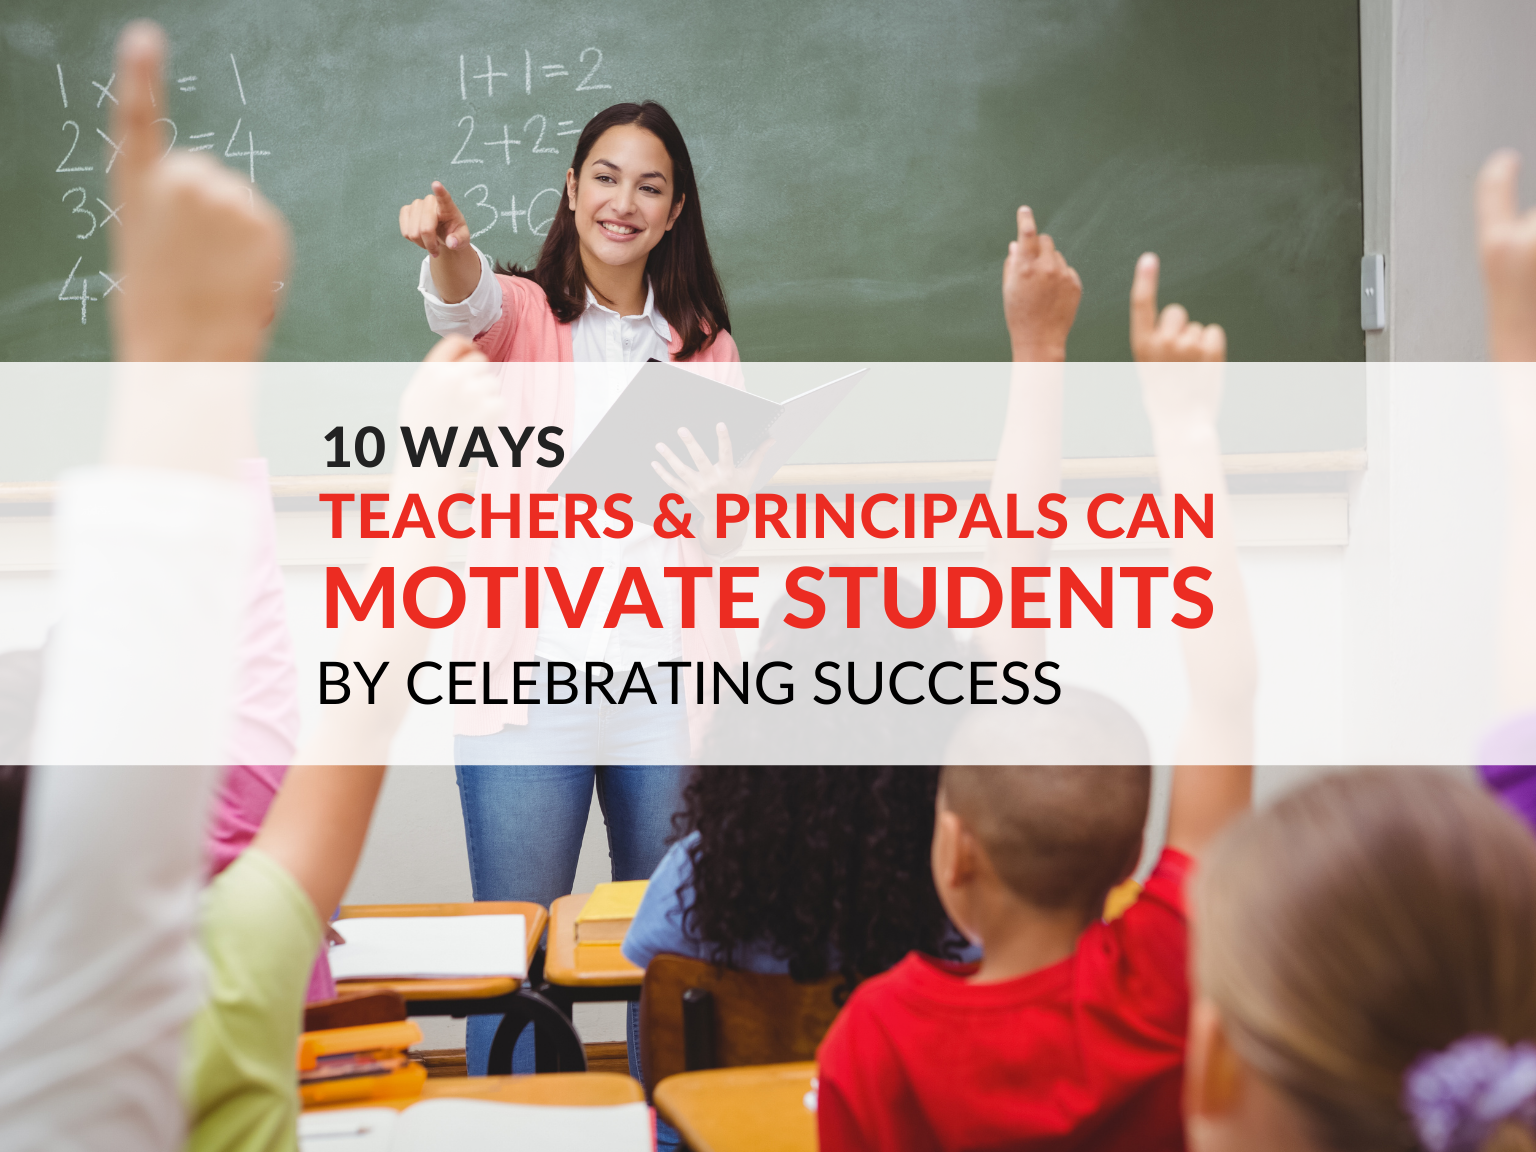 motivate-students-how-teachers-motivate-students-importance-of-awards-and-recognition-for-students-celebrating-student-success